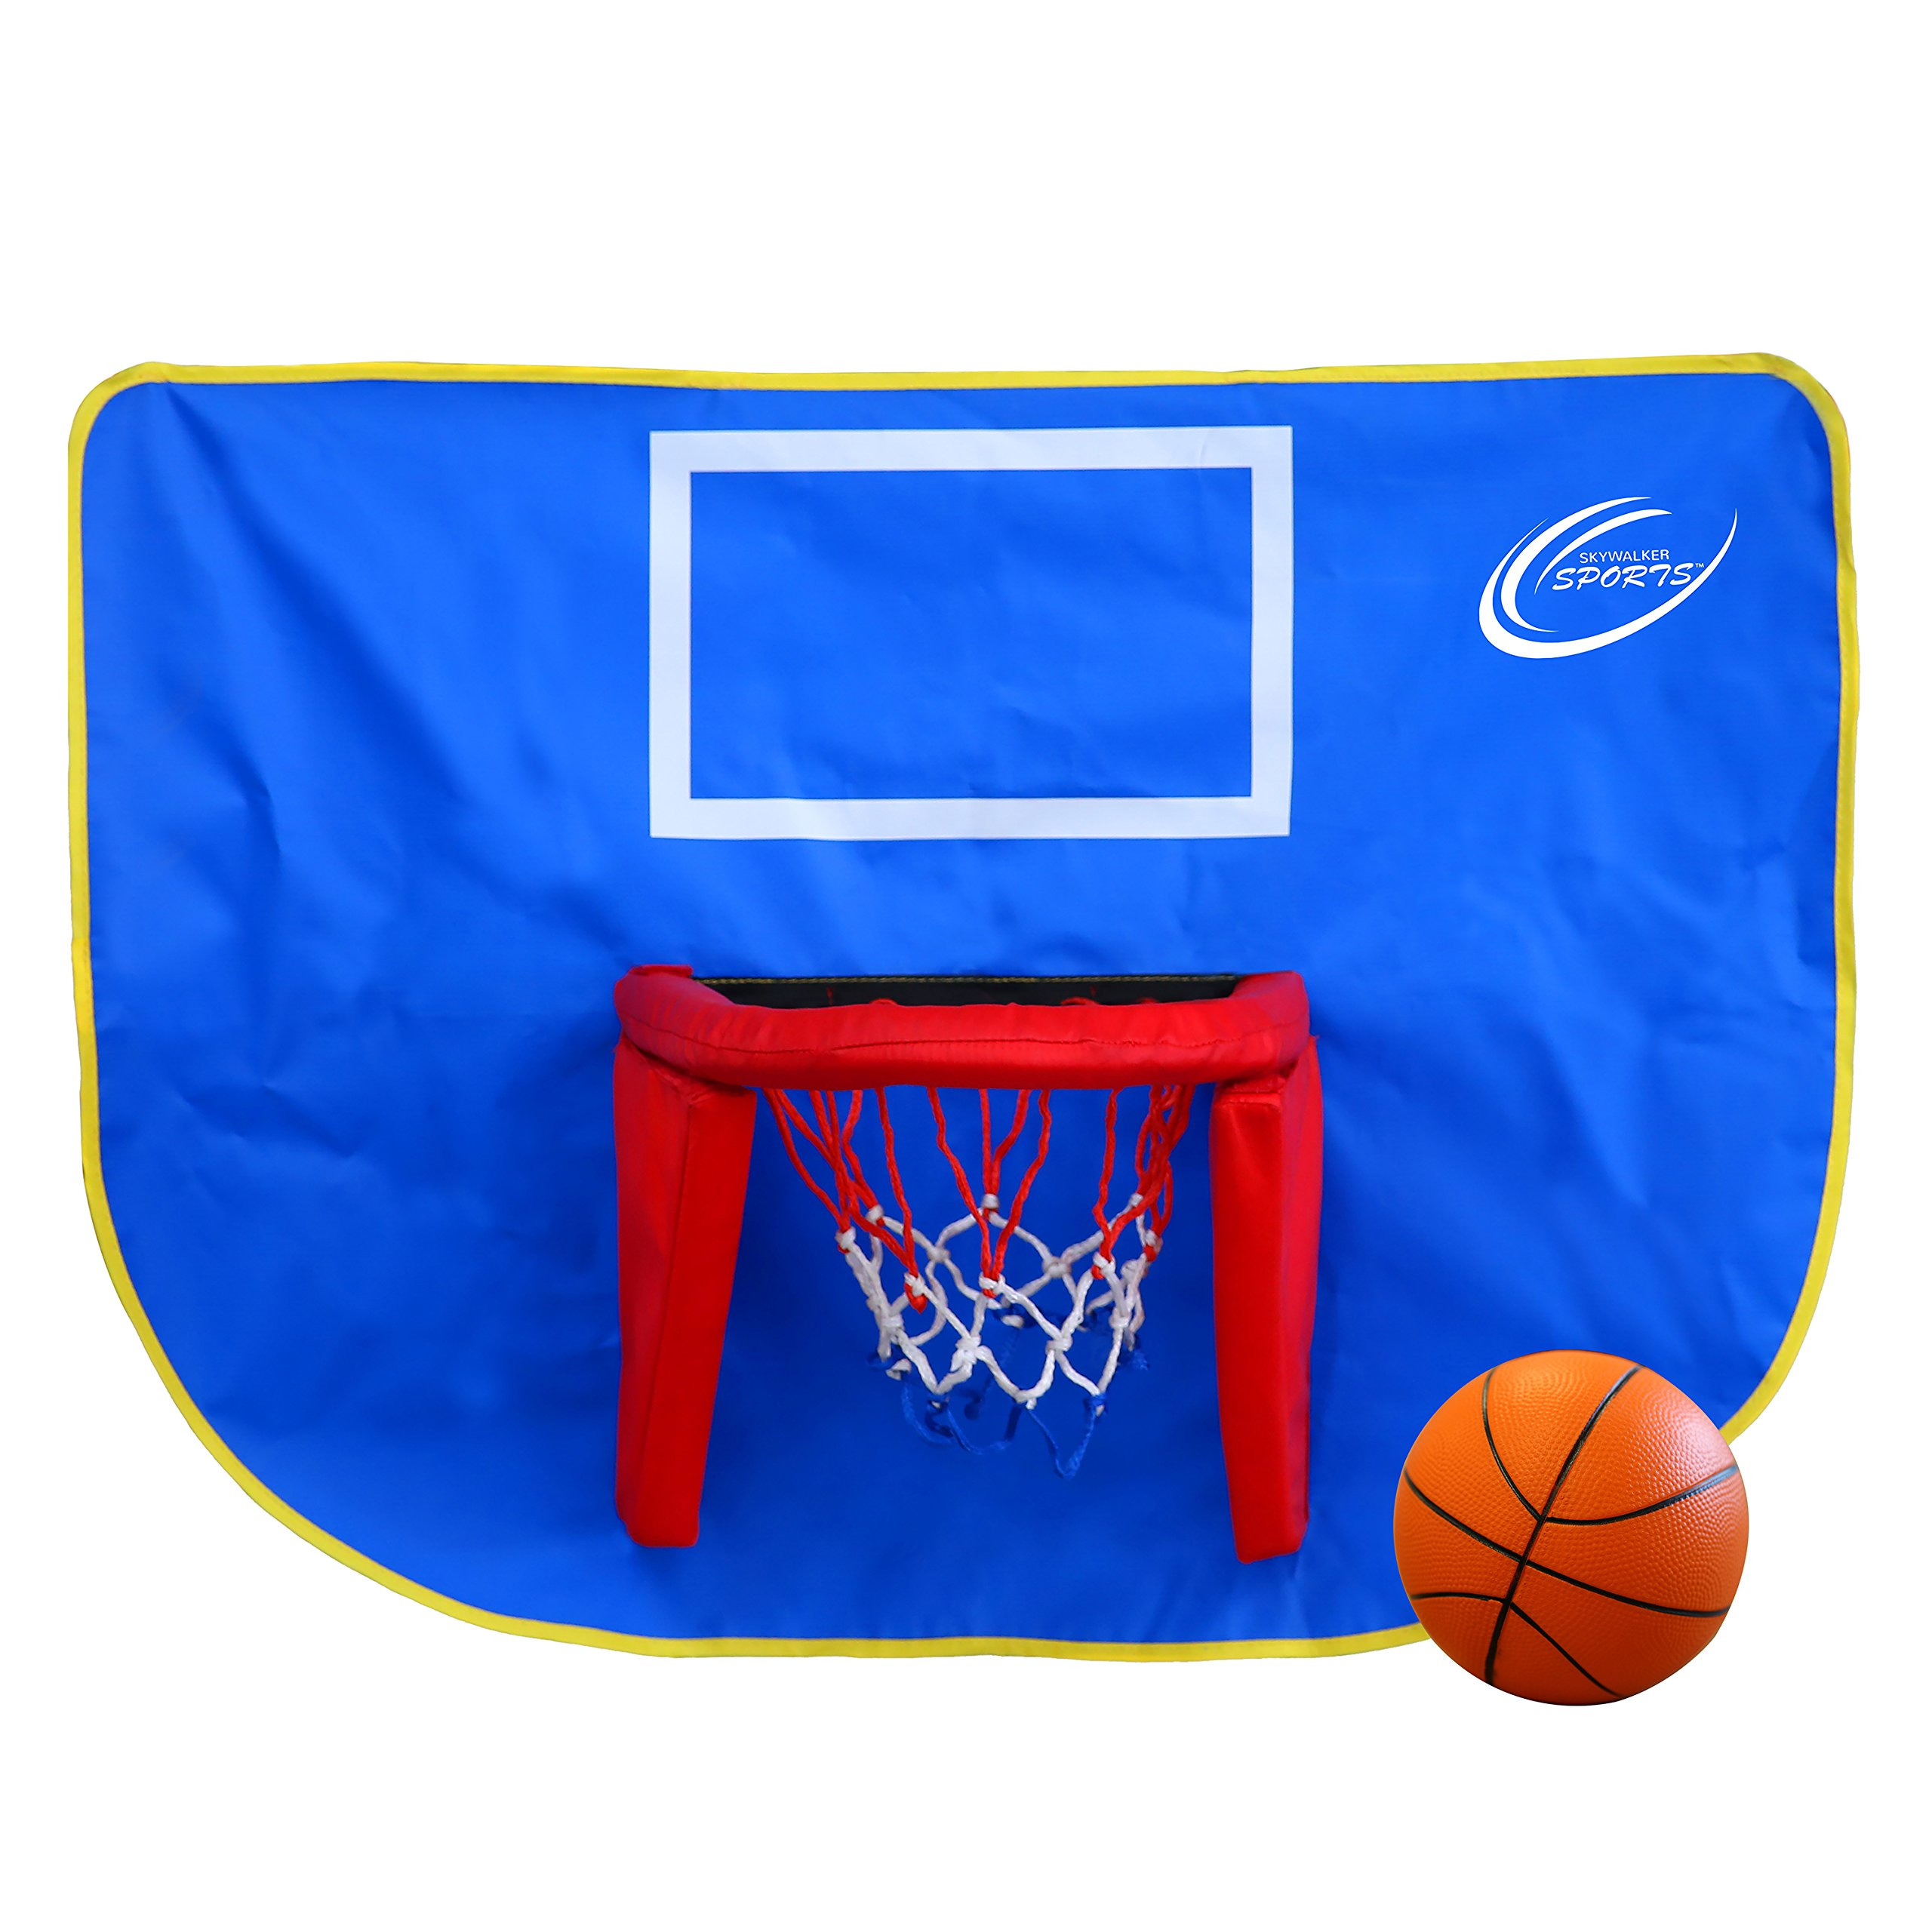 Skywalker Trampolines basketball Hoop and Ball Trampoline Accessory by Skywalker Trampolines